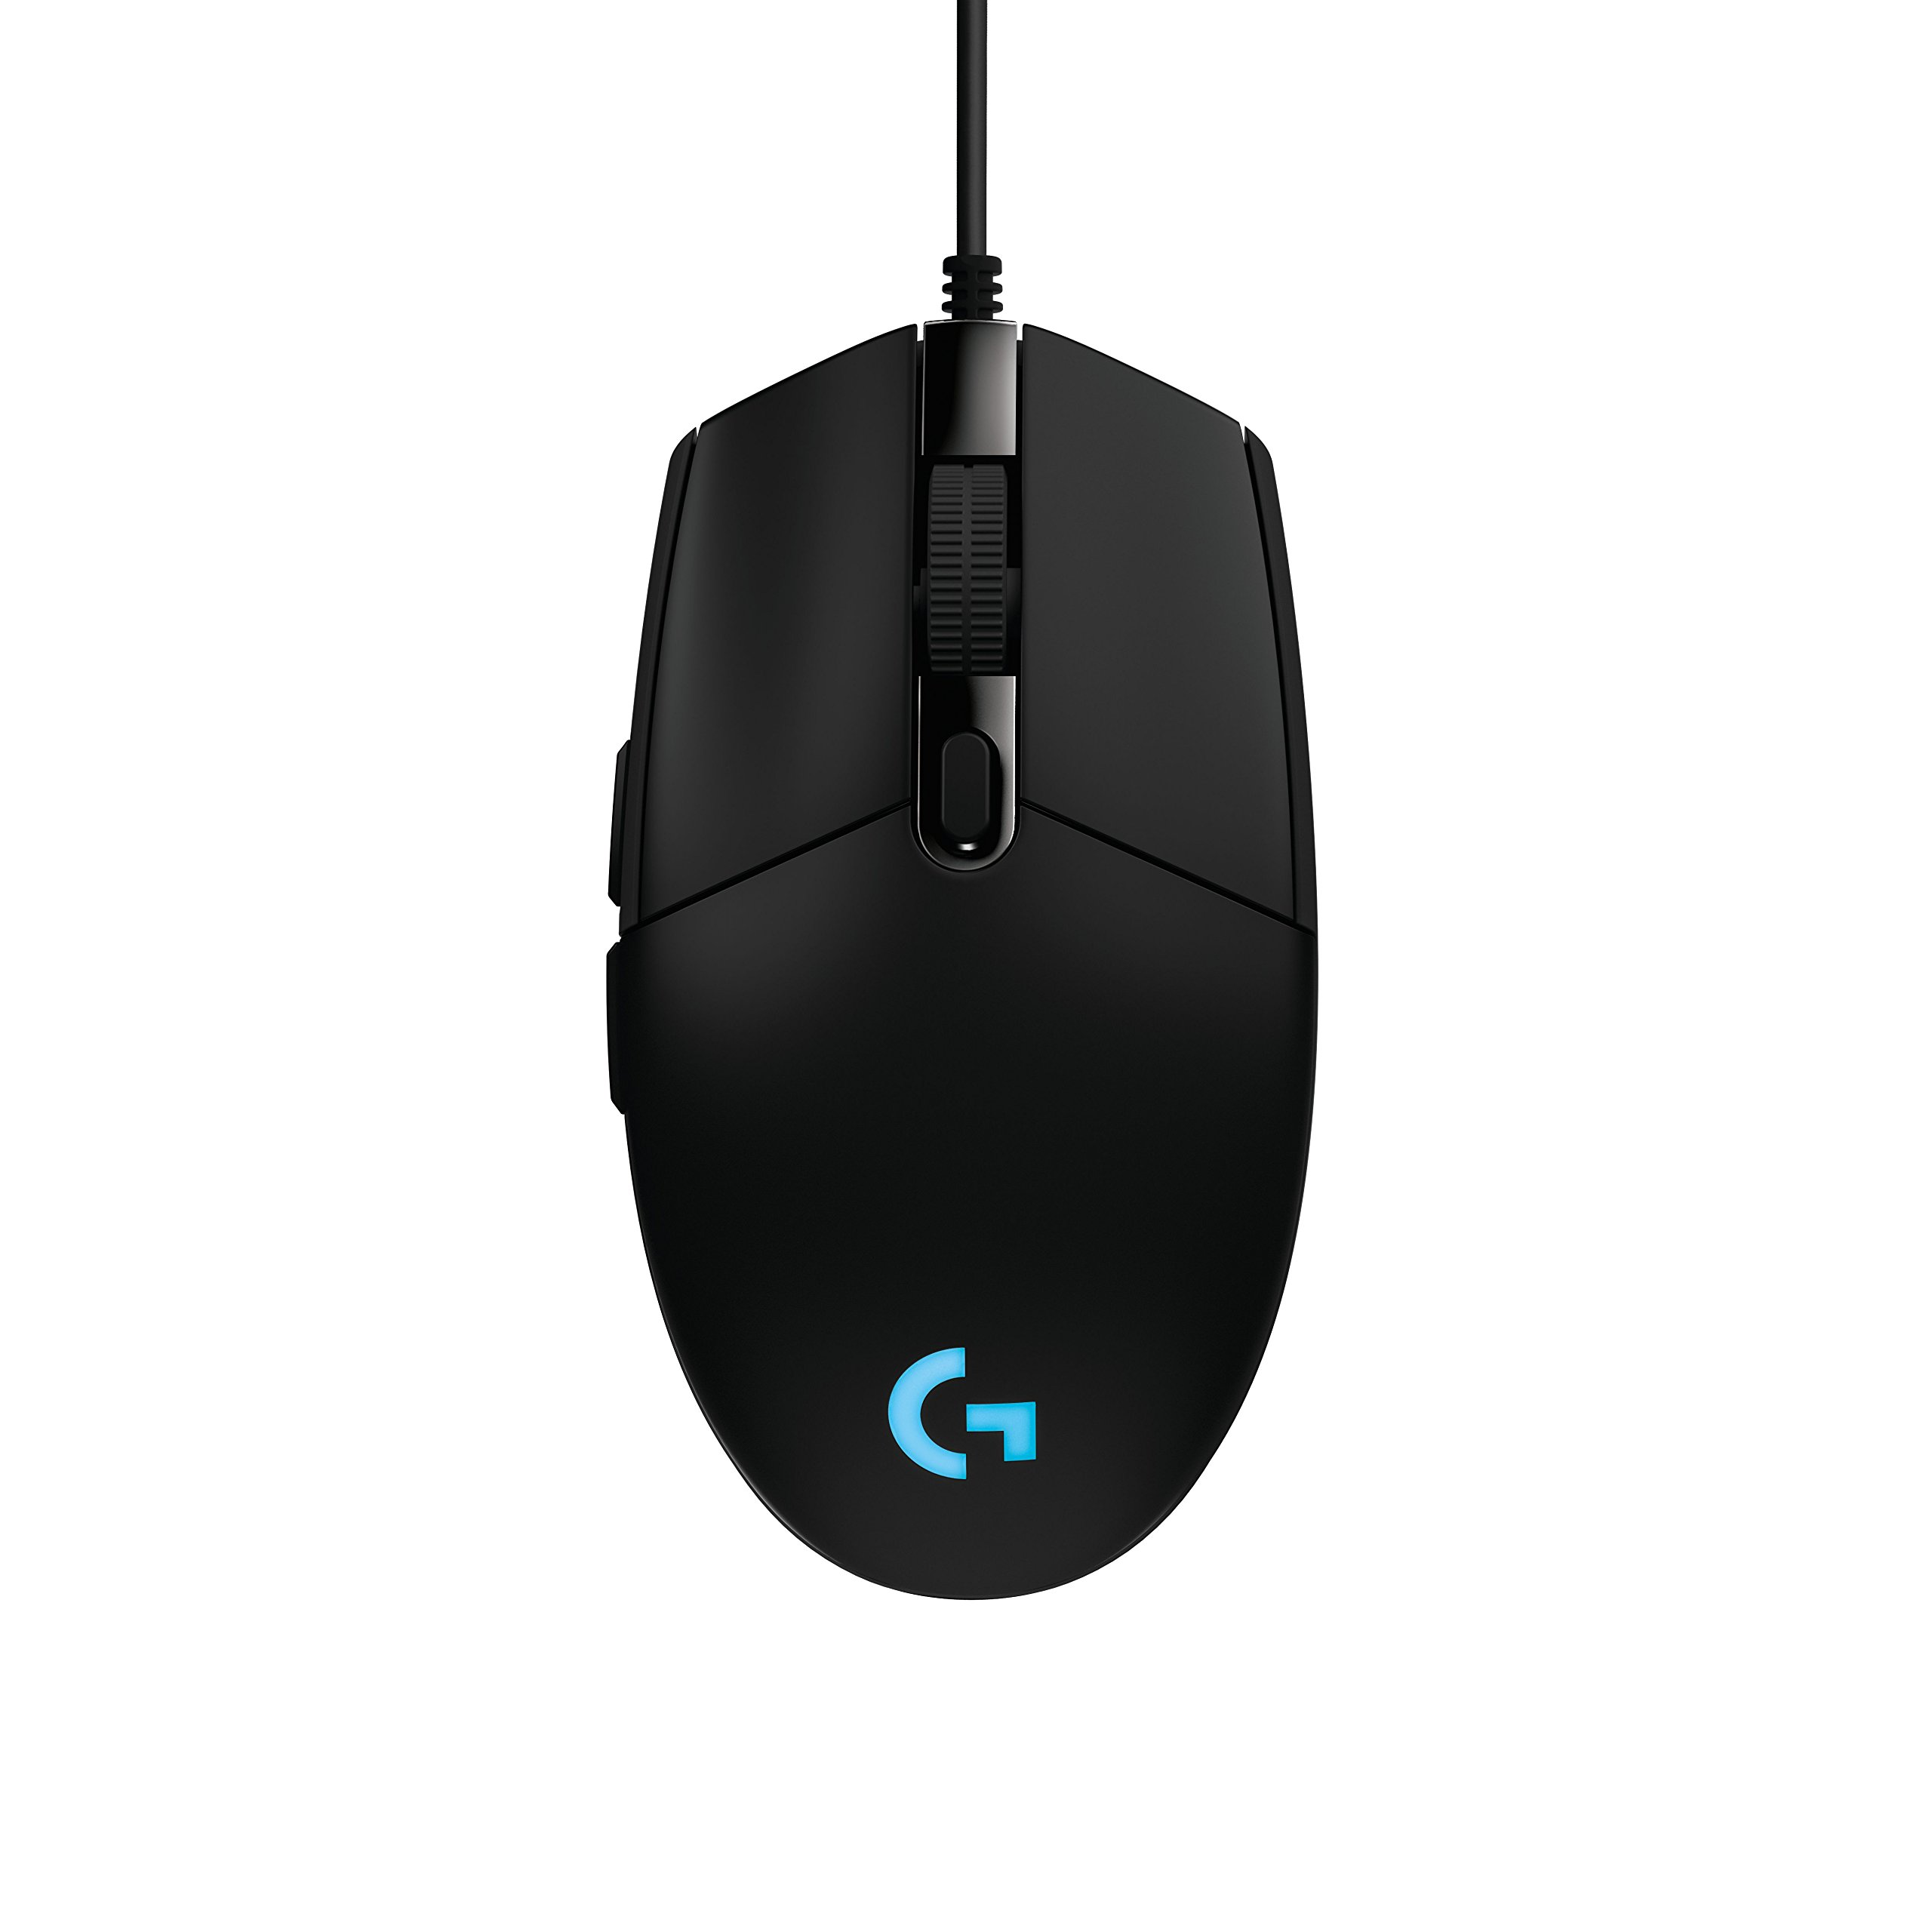 Logitech G203 Prodigy RGB Wired Gaming Mouse - Black by Logitech G